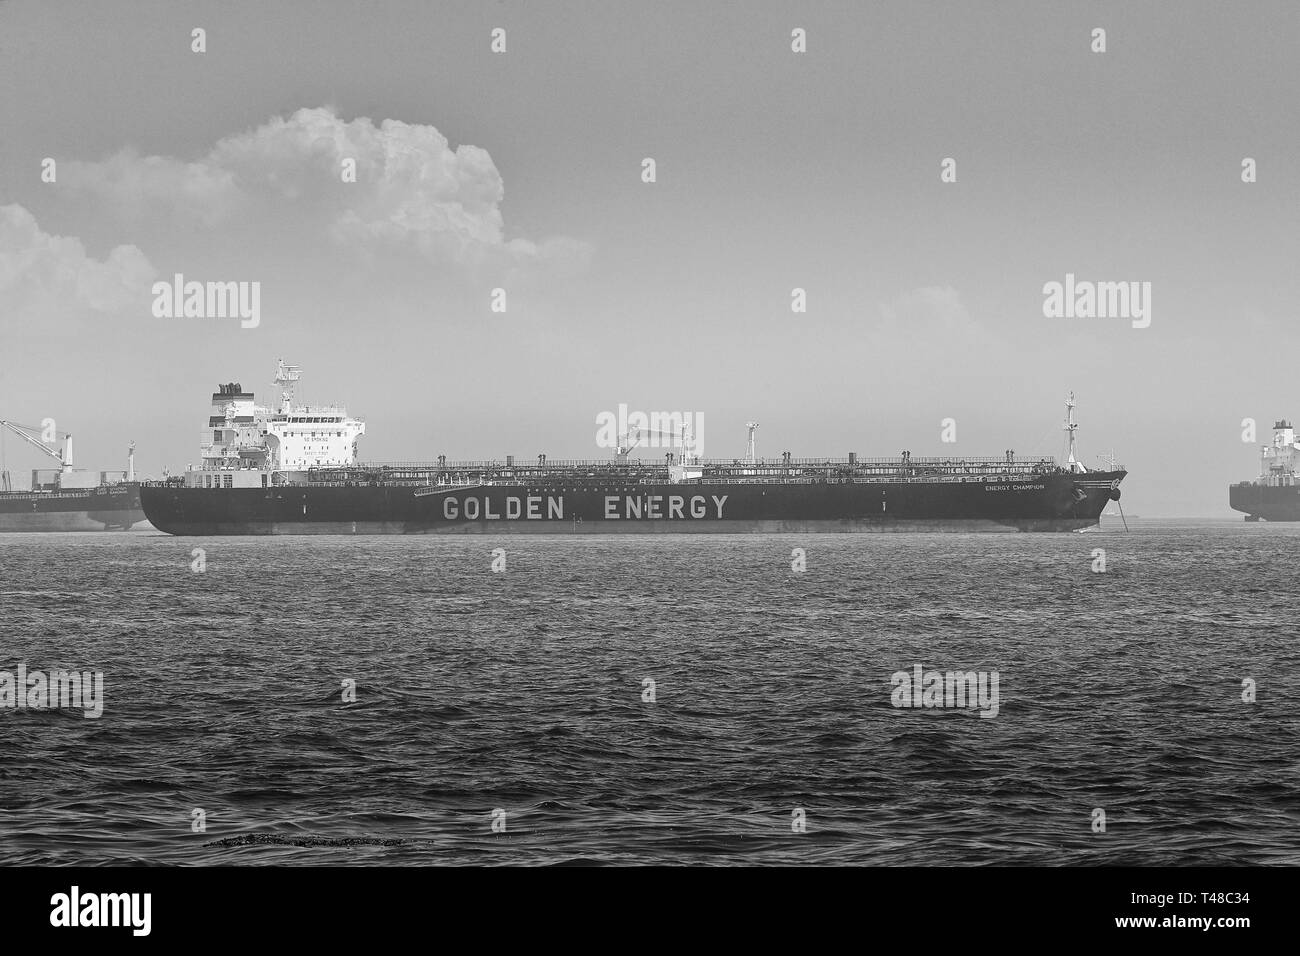 Black And White Photo Of The GOLDEN ENERGY Supertanker, (Crude Oil Tanker), ENERGY CHAMPION, Anchored In The Port Of Long Beach, California, USA. - Stock Image